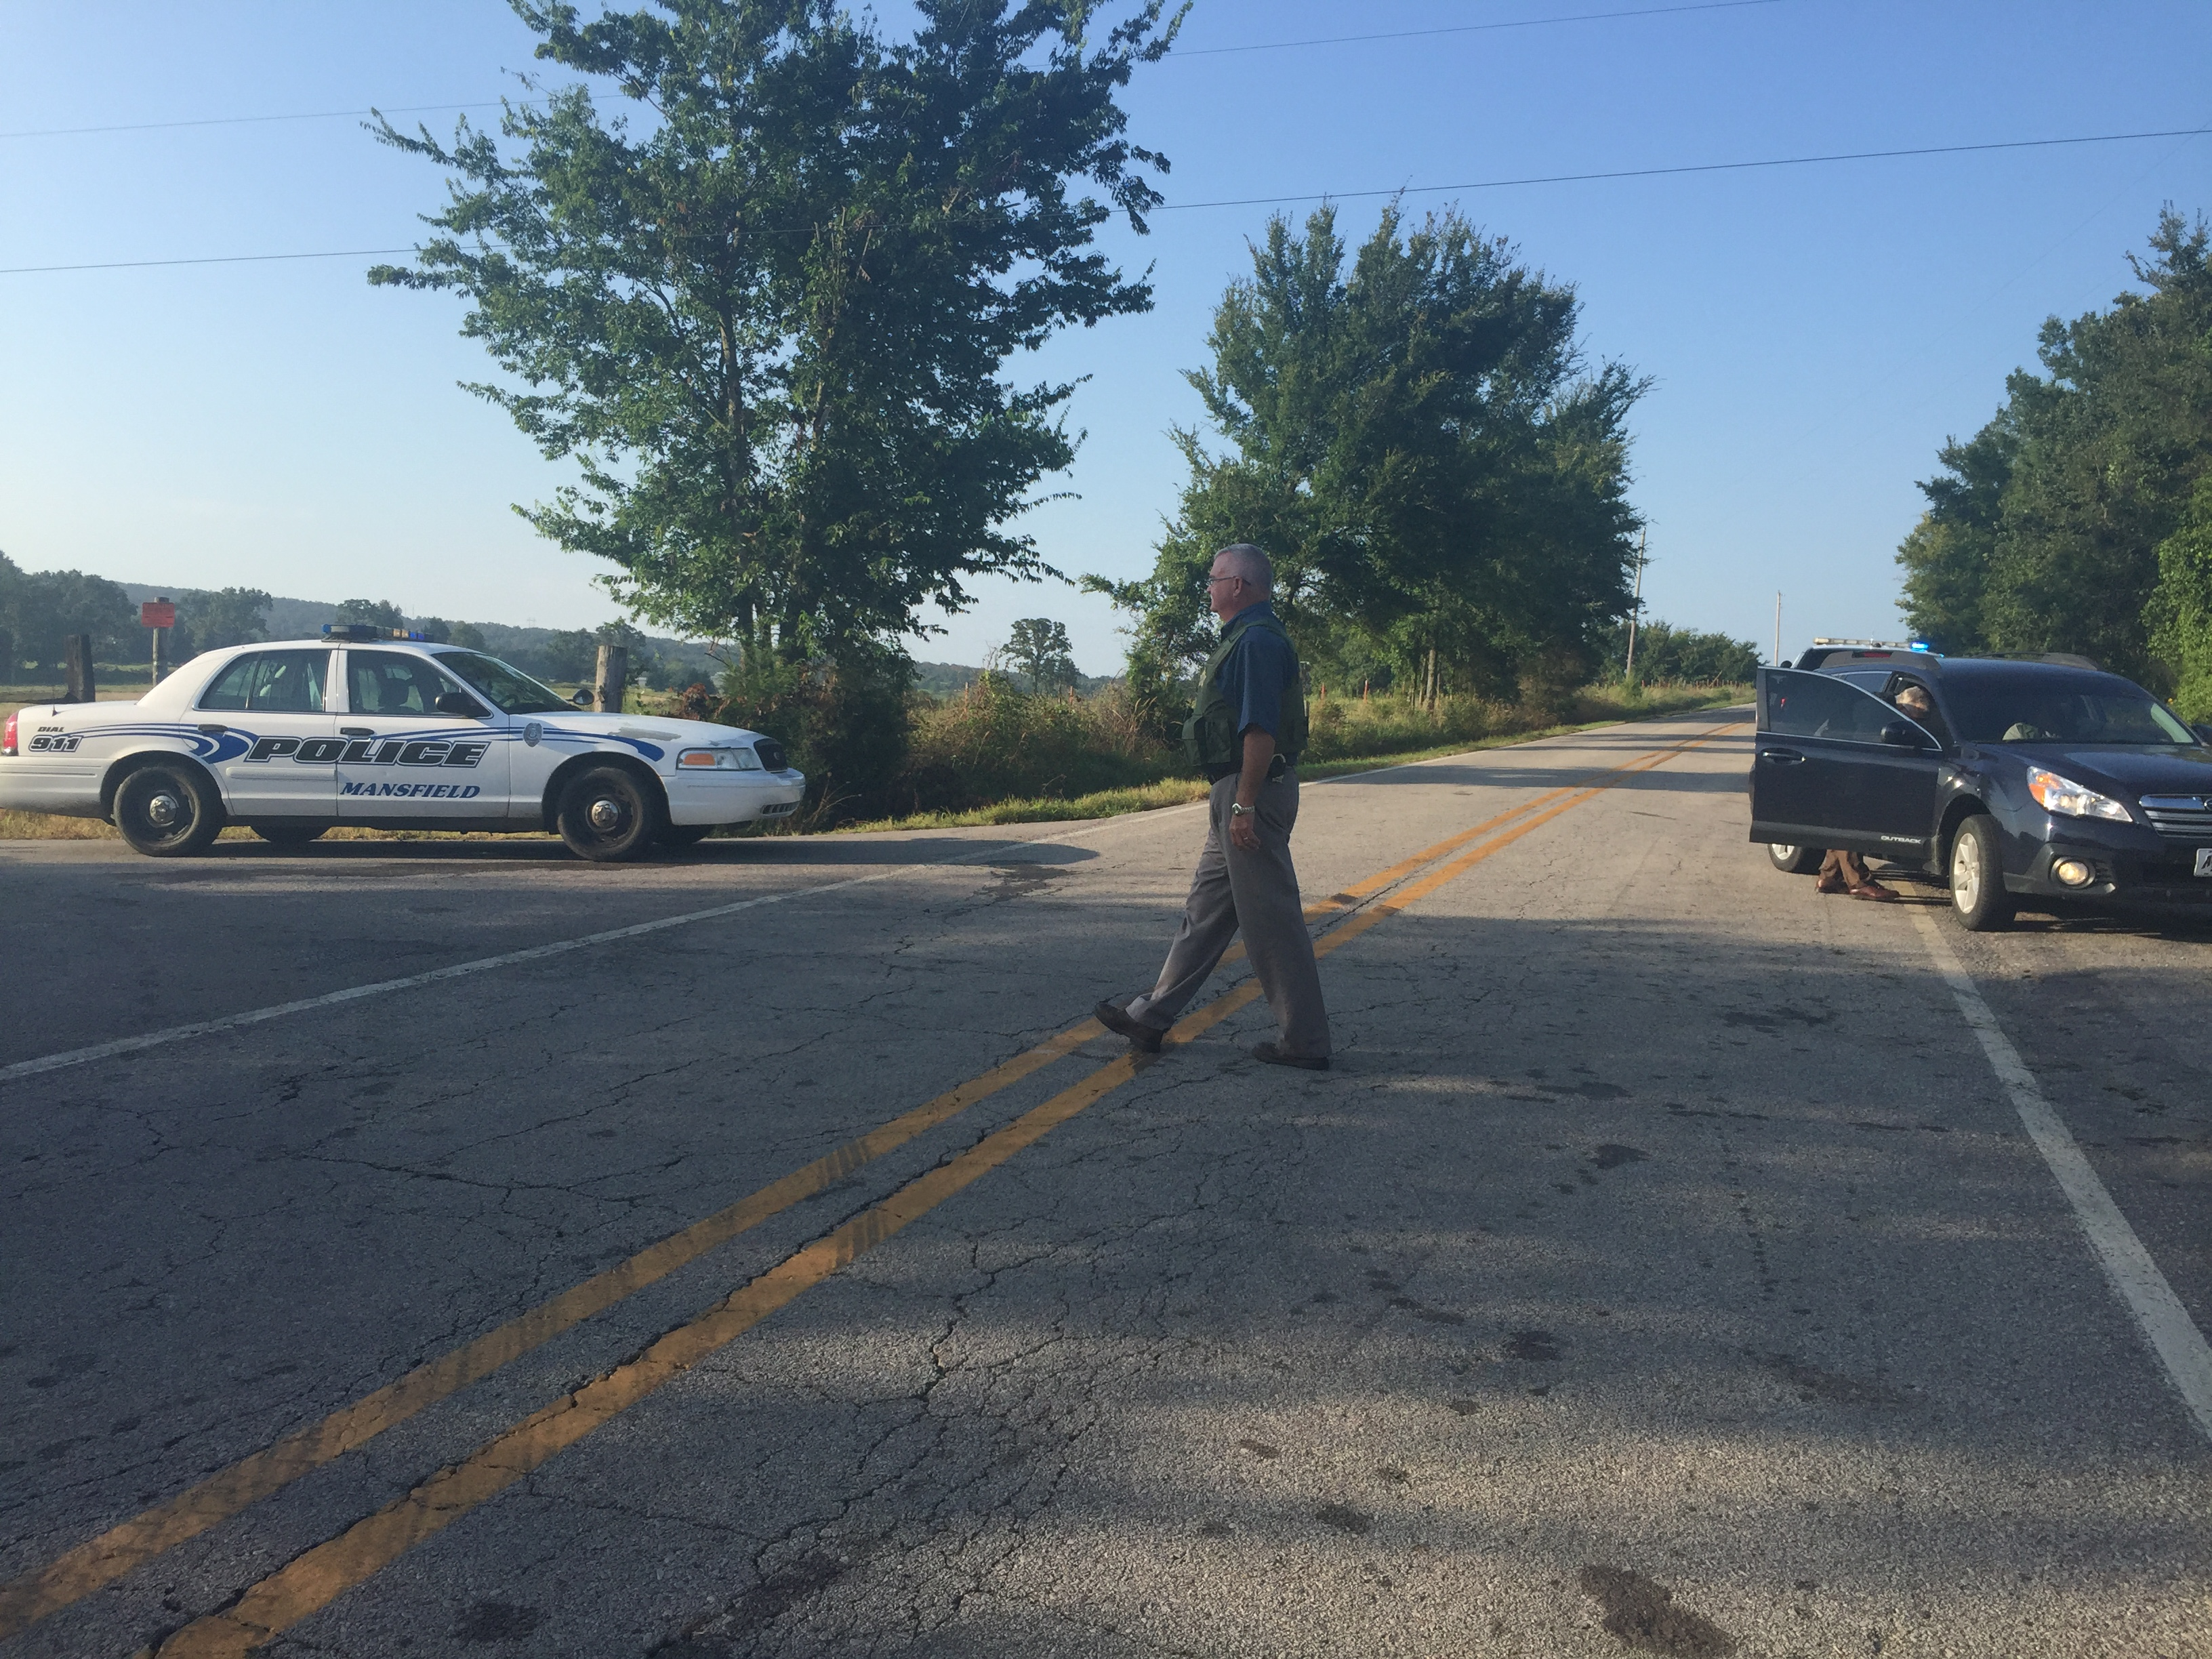 Man in Custody After Two Police Officers Shot in Arkansas